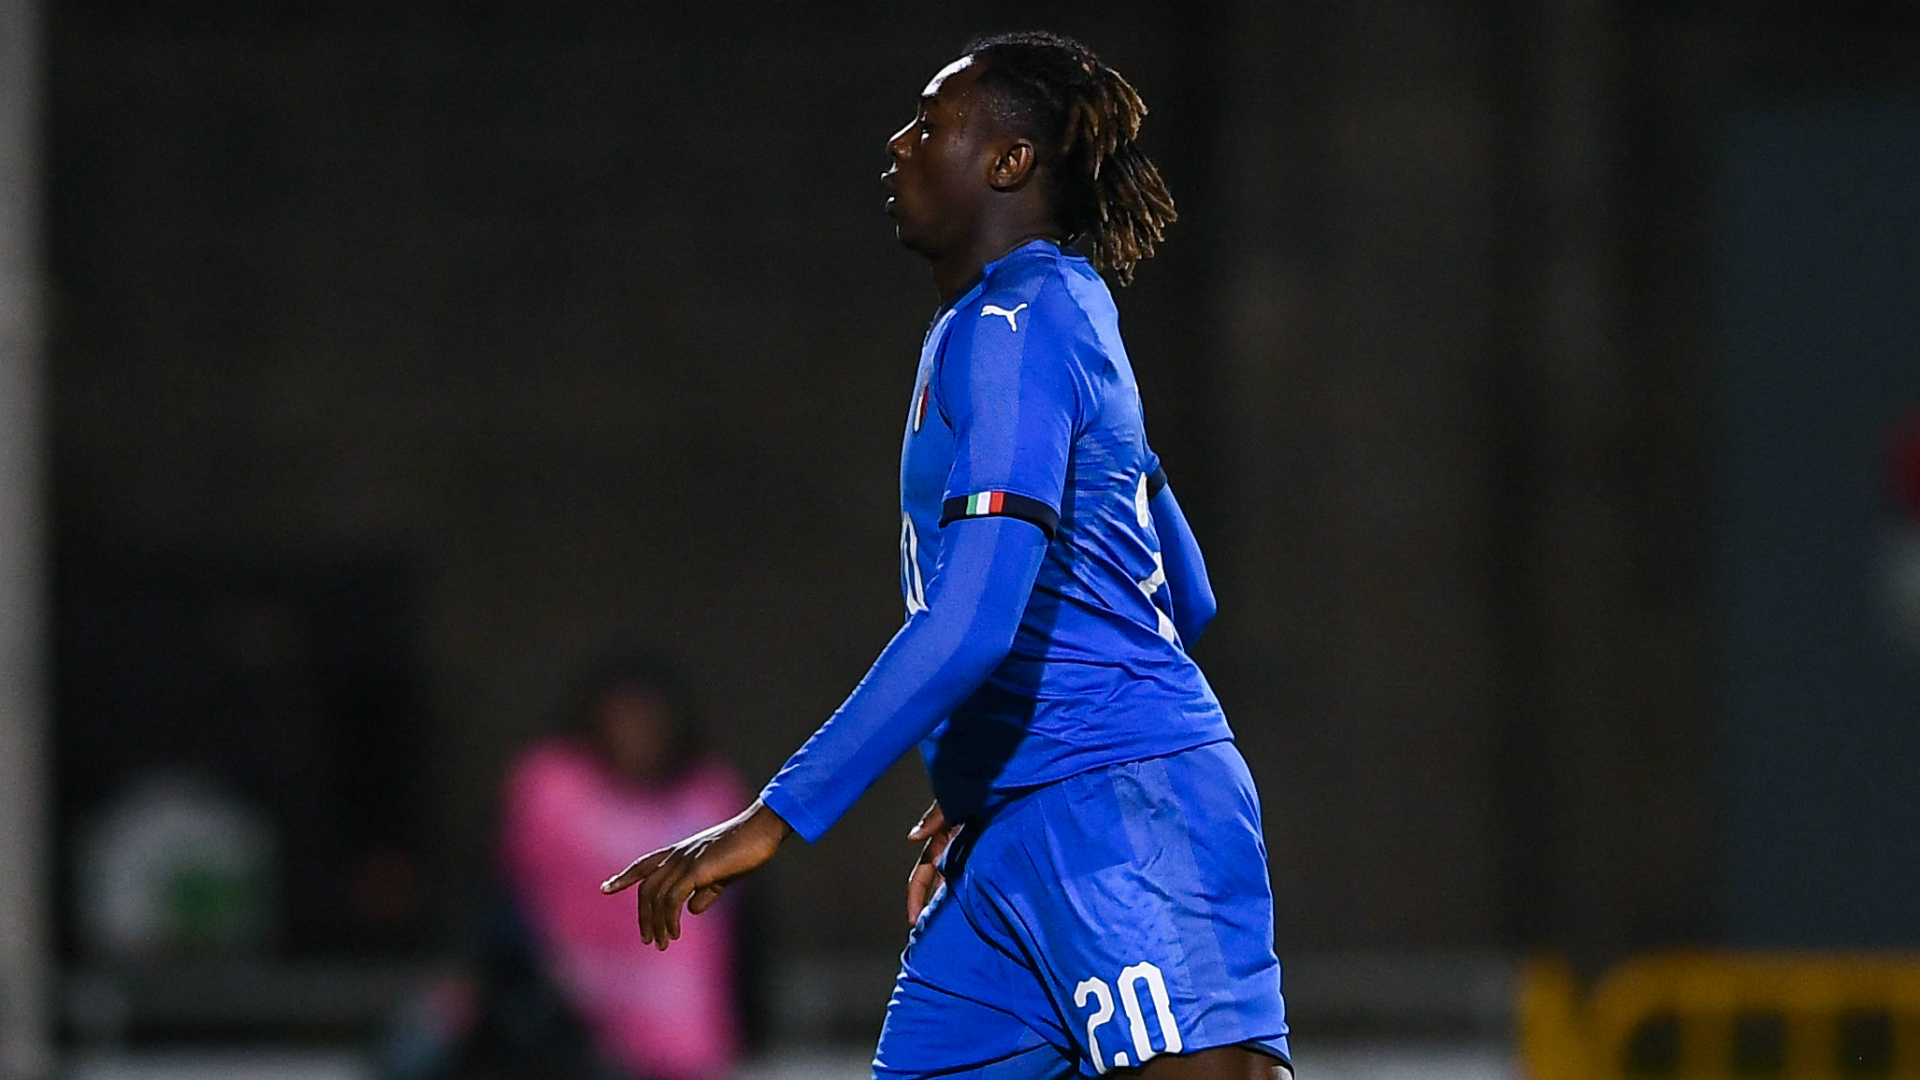 Mancini warns Kean after red card in Italy Under-21 game